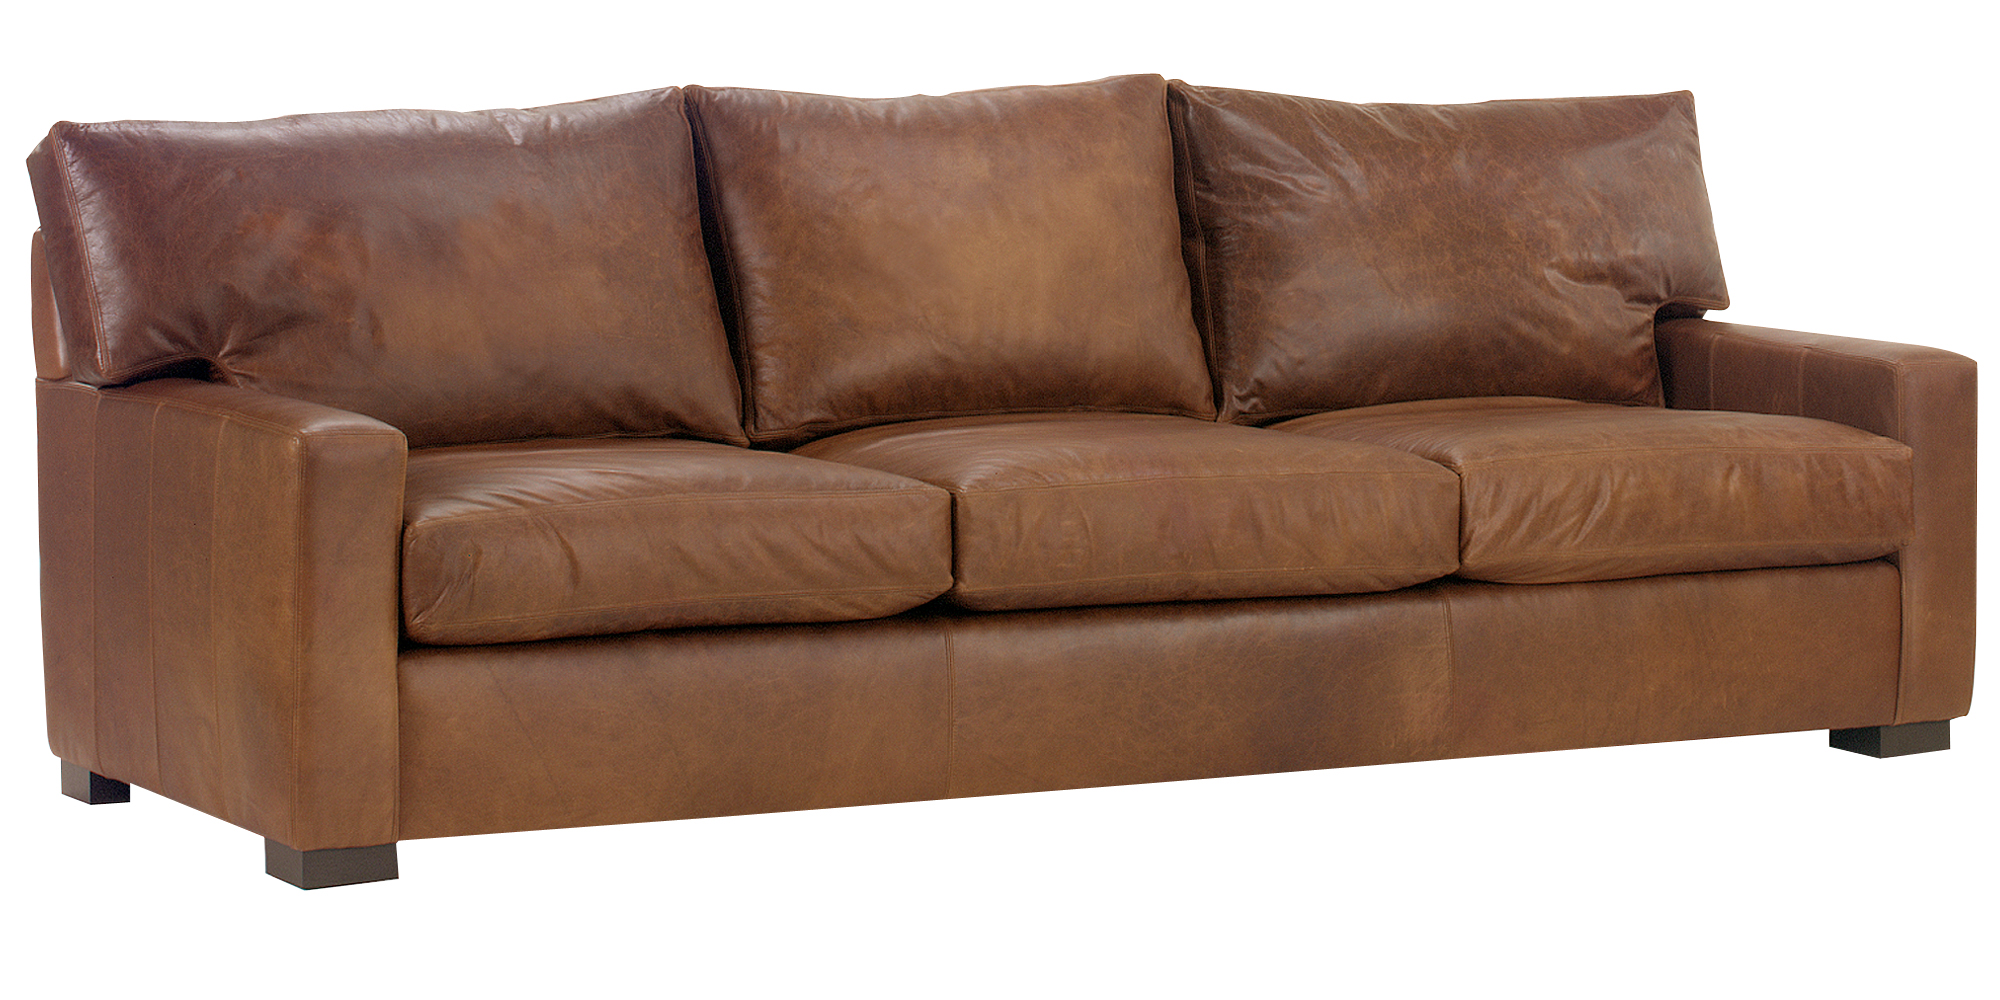 Oversized Contemporary Leather Furniture With Track Arms